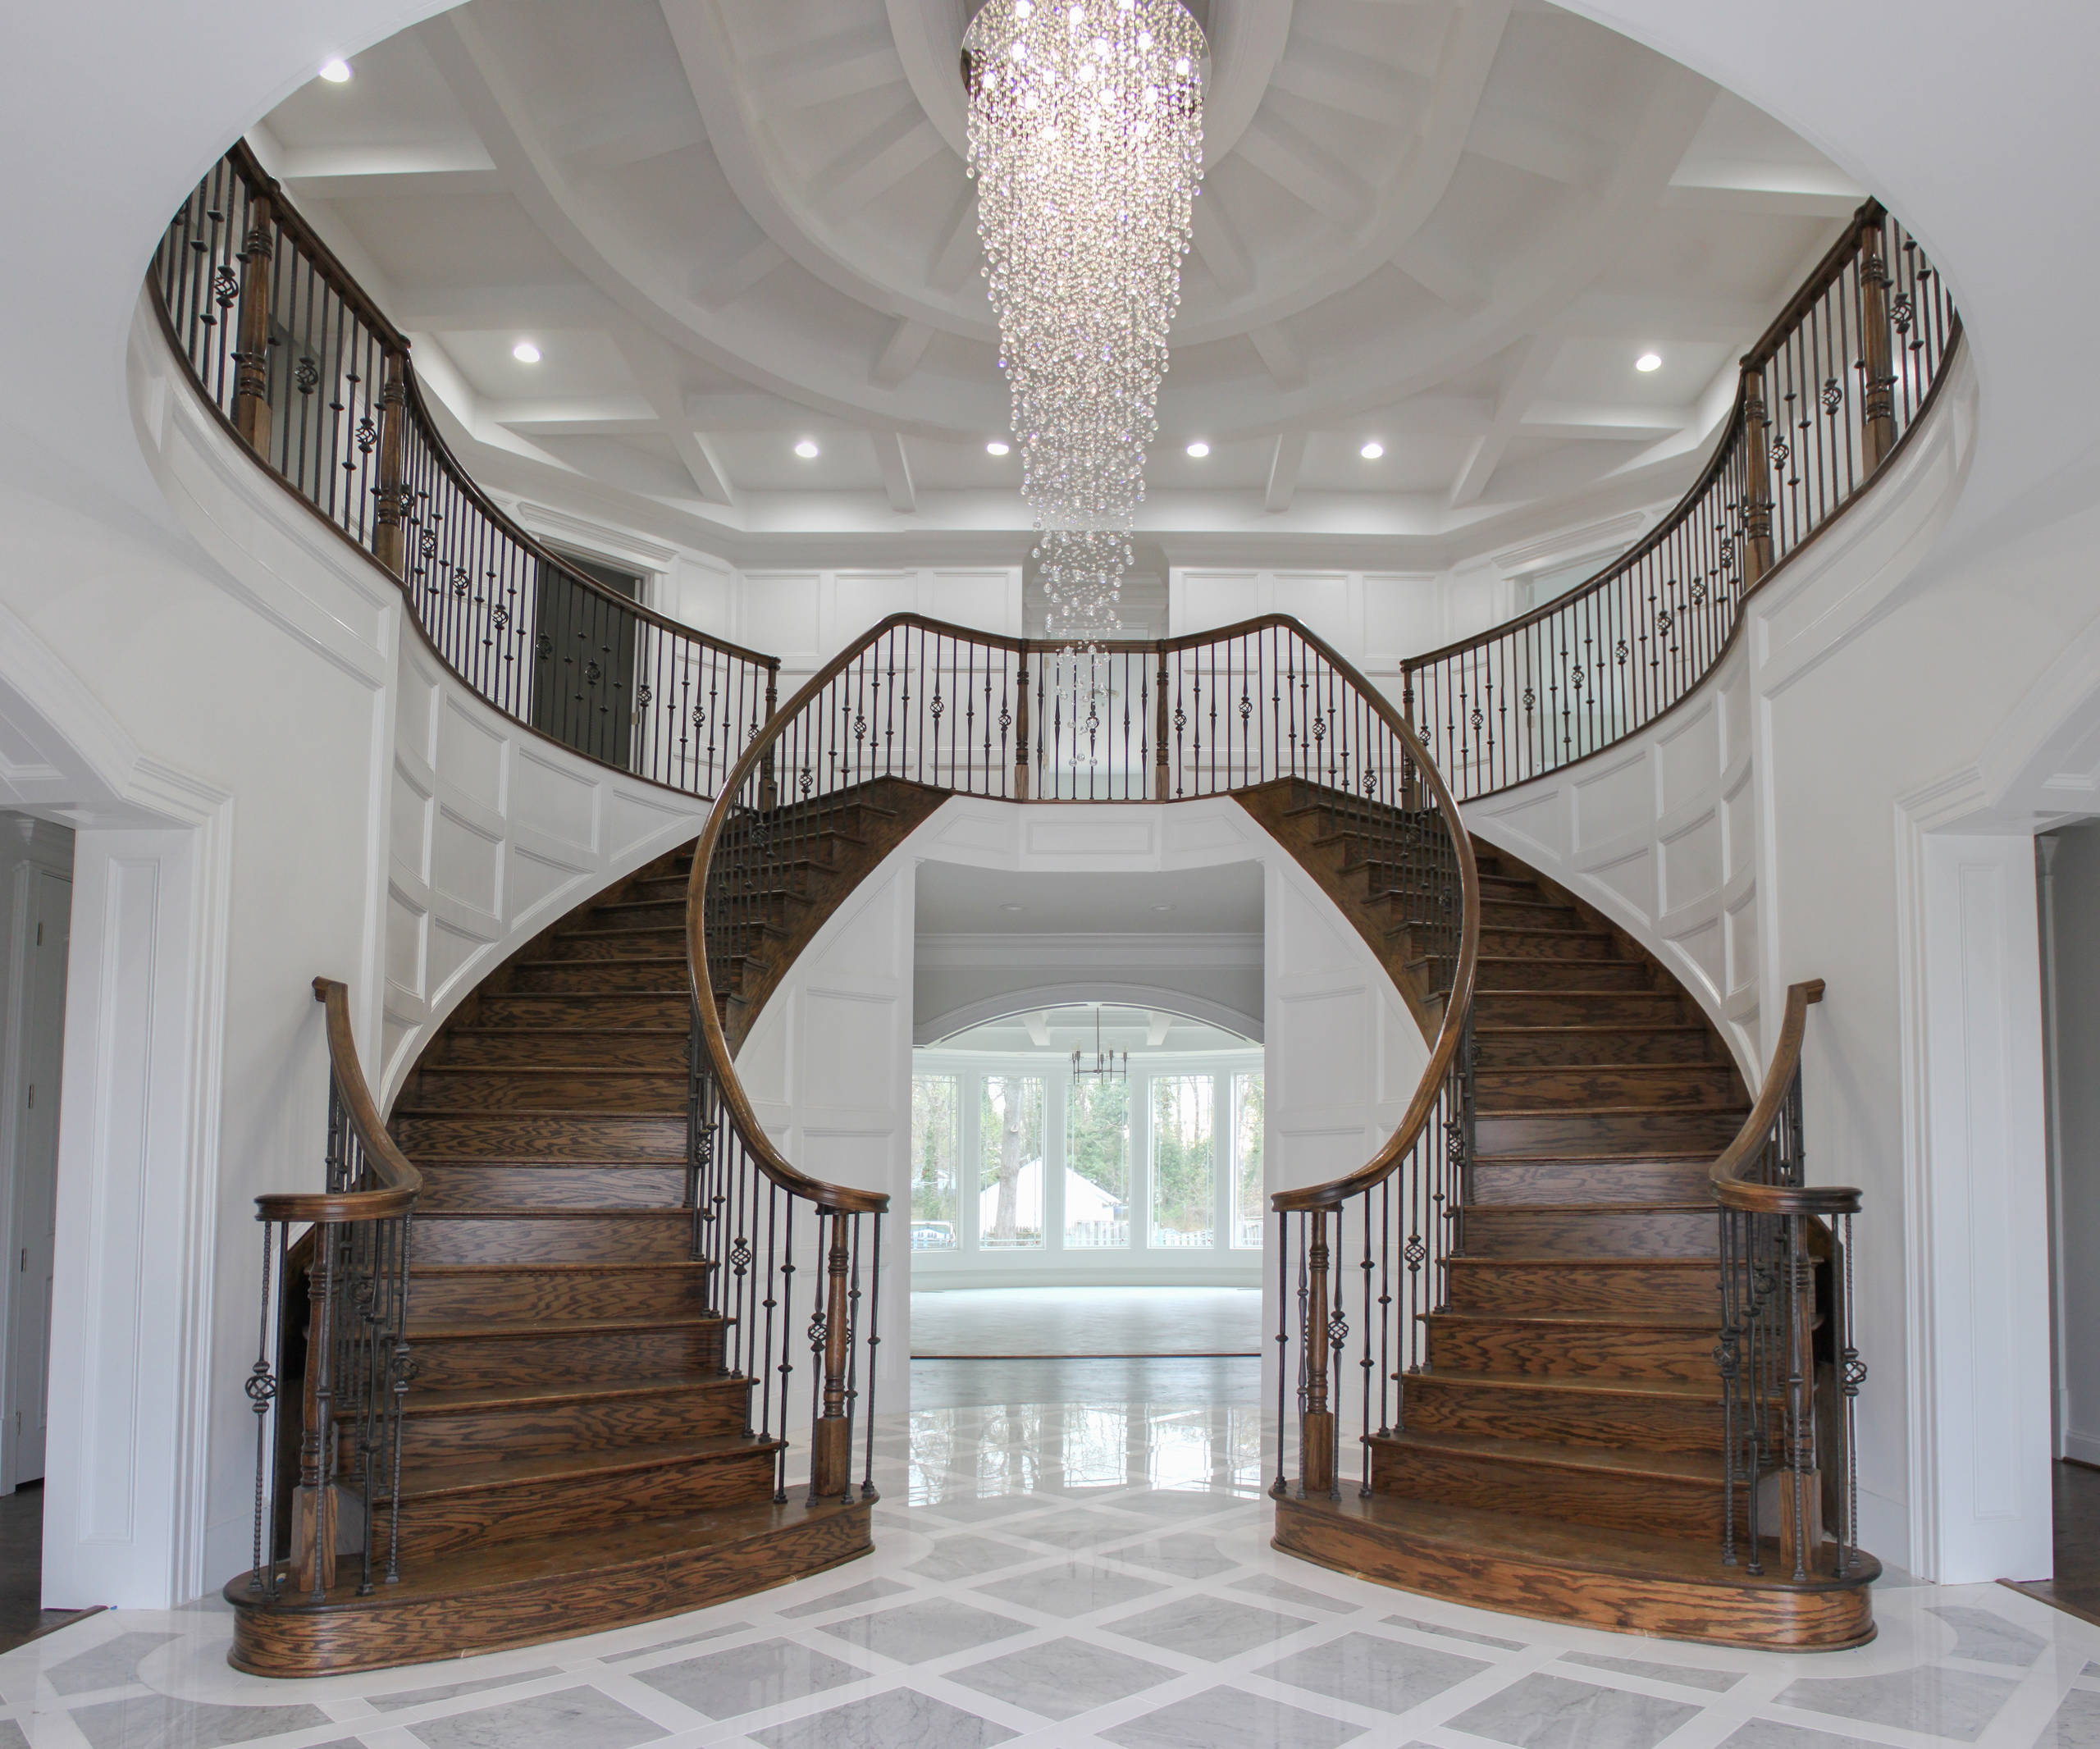 51_Elegant and Welcoming Twin Curved Staircase, Alexandria VA 22060